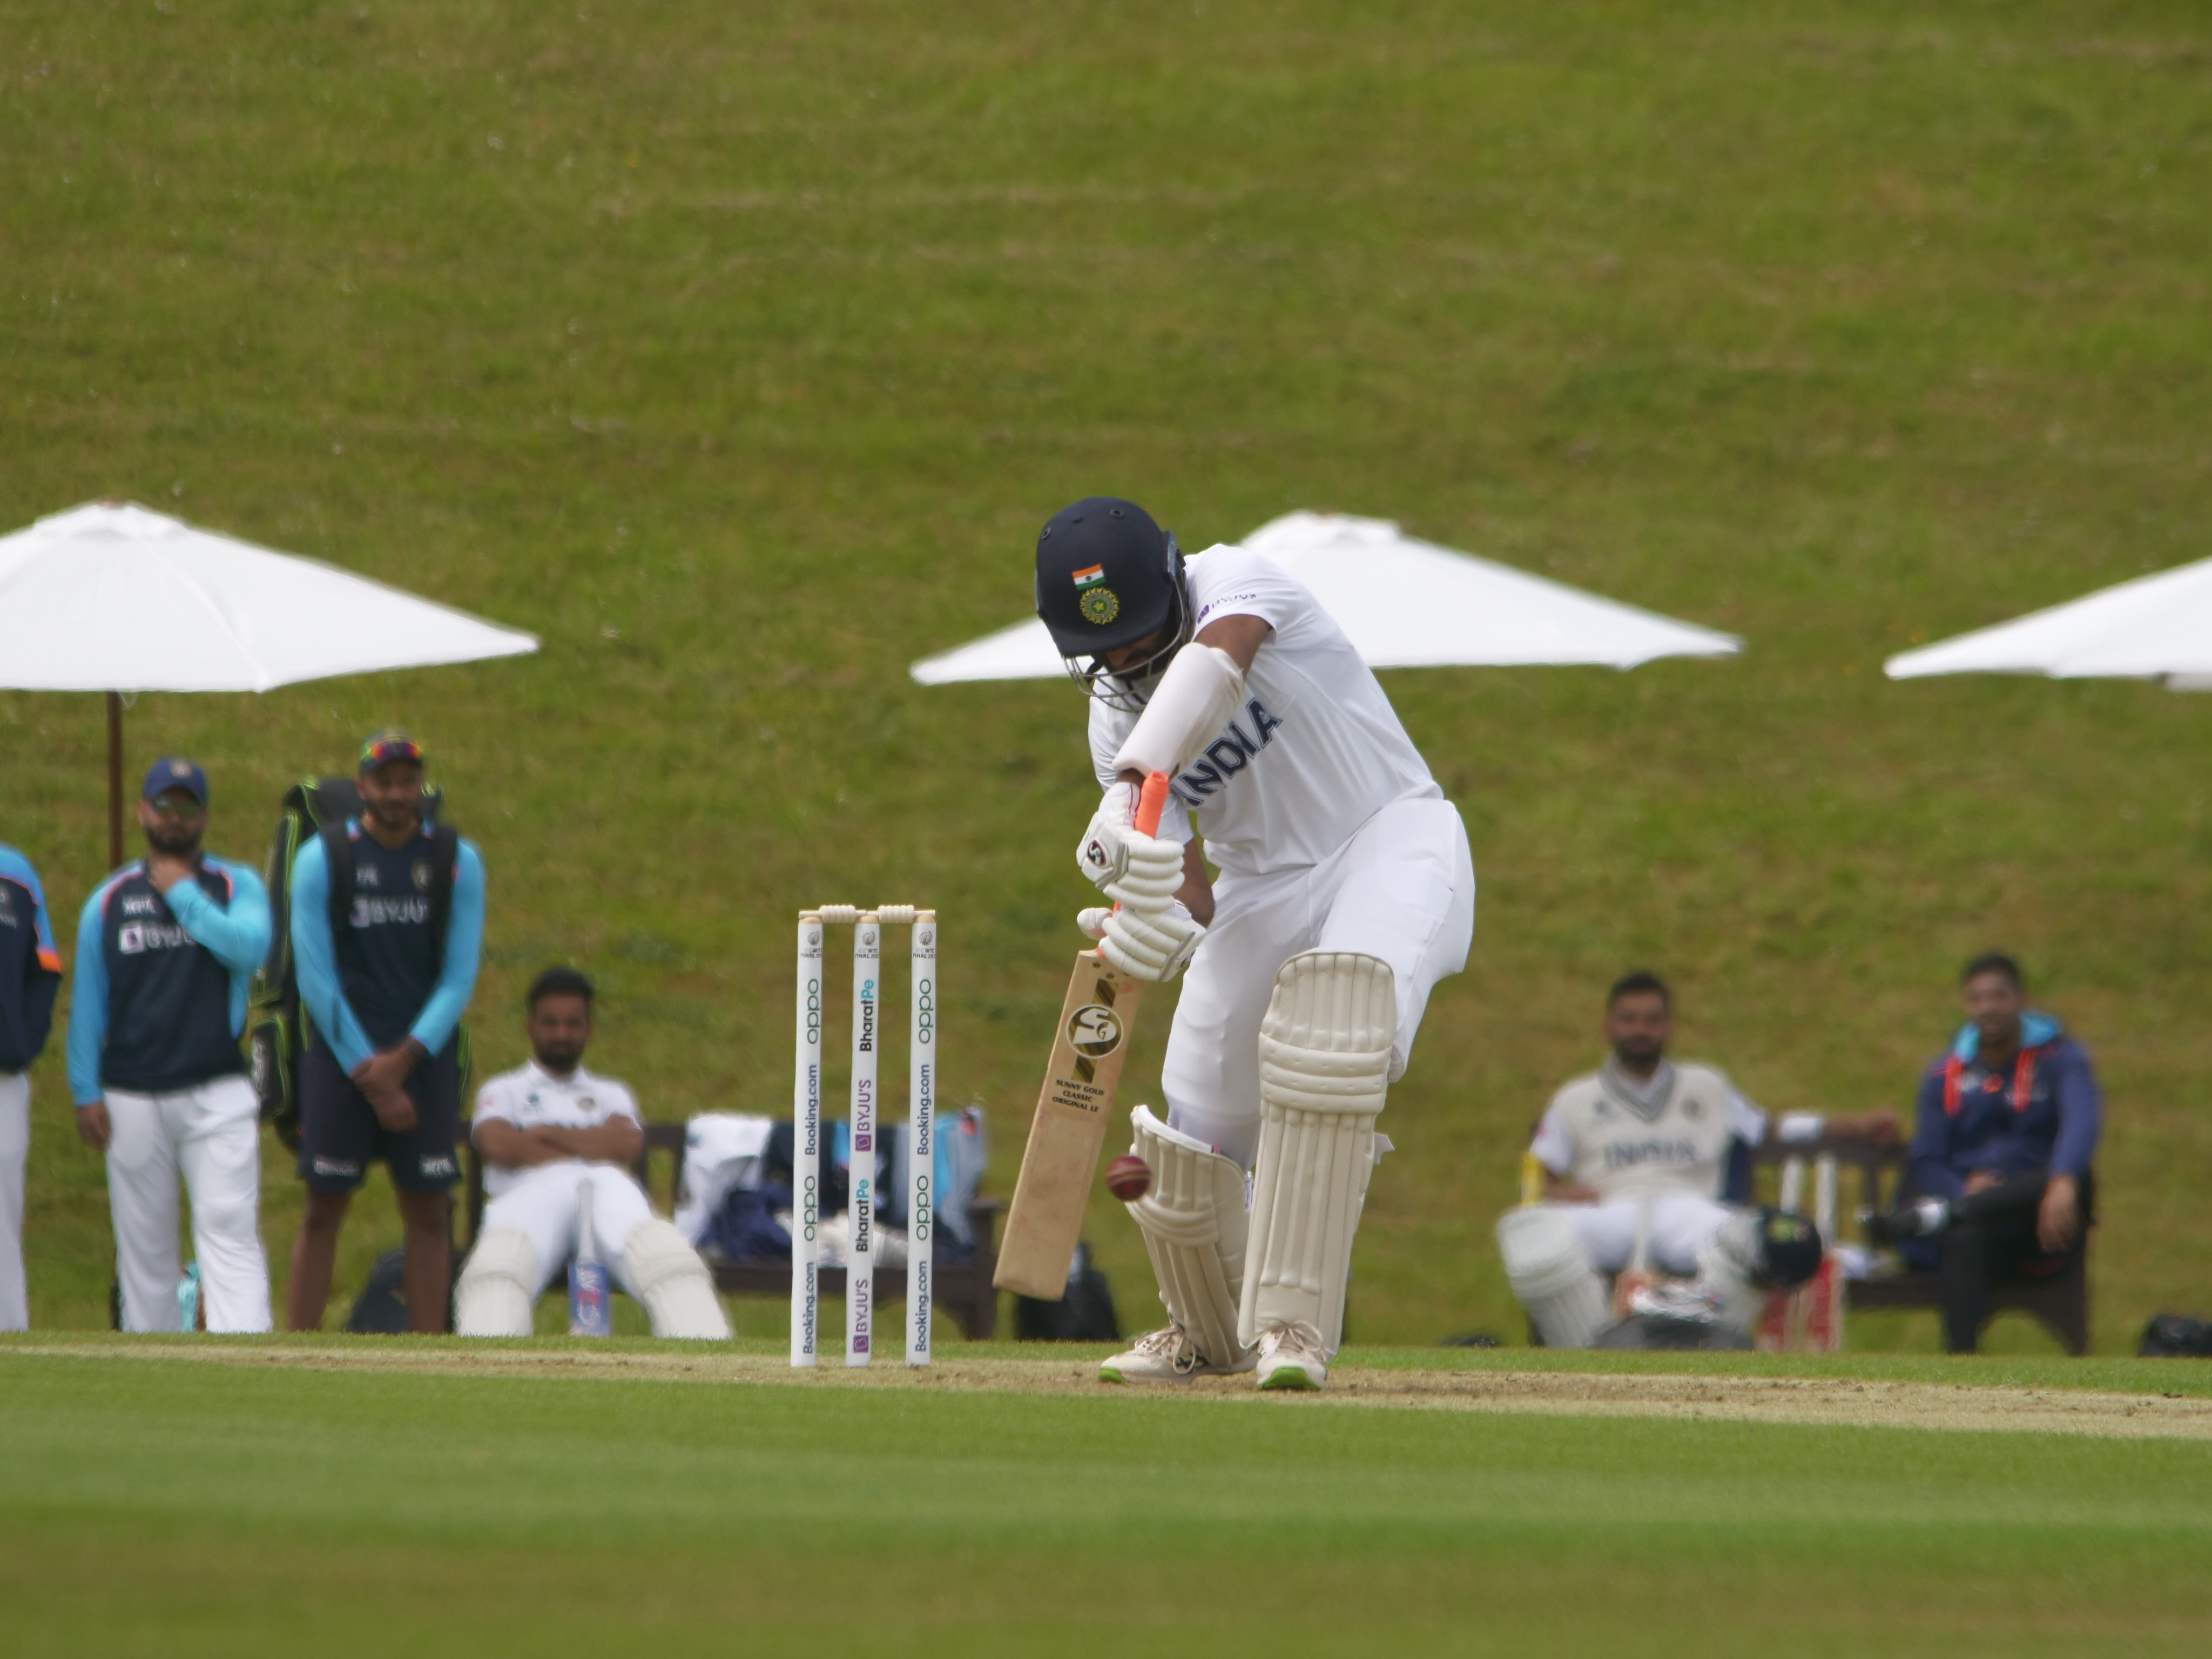 Cheteshwar Pujara plays a shot during an intra-squad game | BCCI Twitter